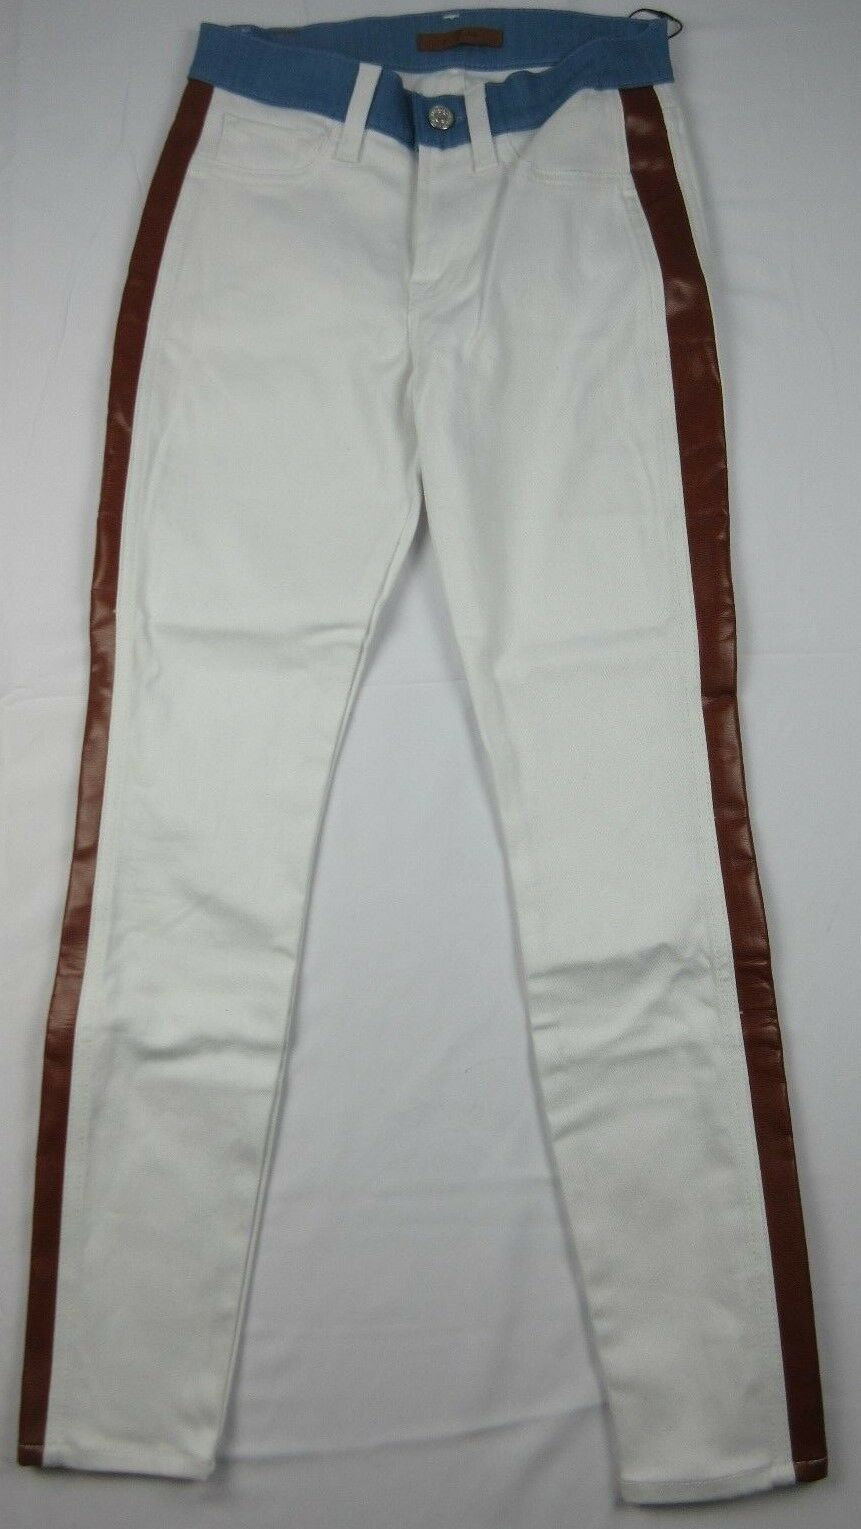 7 FOR ALL MANKIND Sz 24 WHITE STRETCH TUXEDO FAUX LEATHER SKINNY JEANS NWT  255